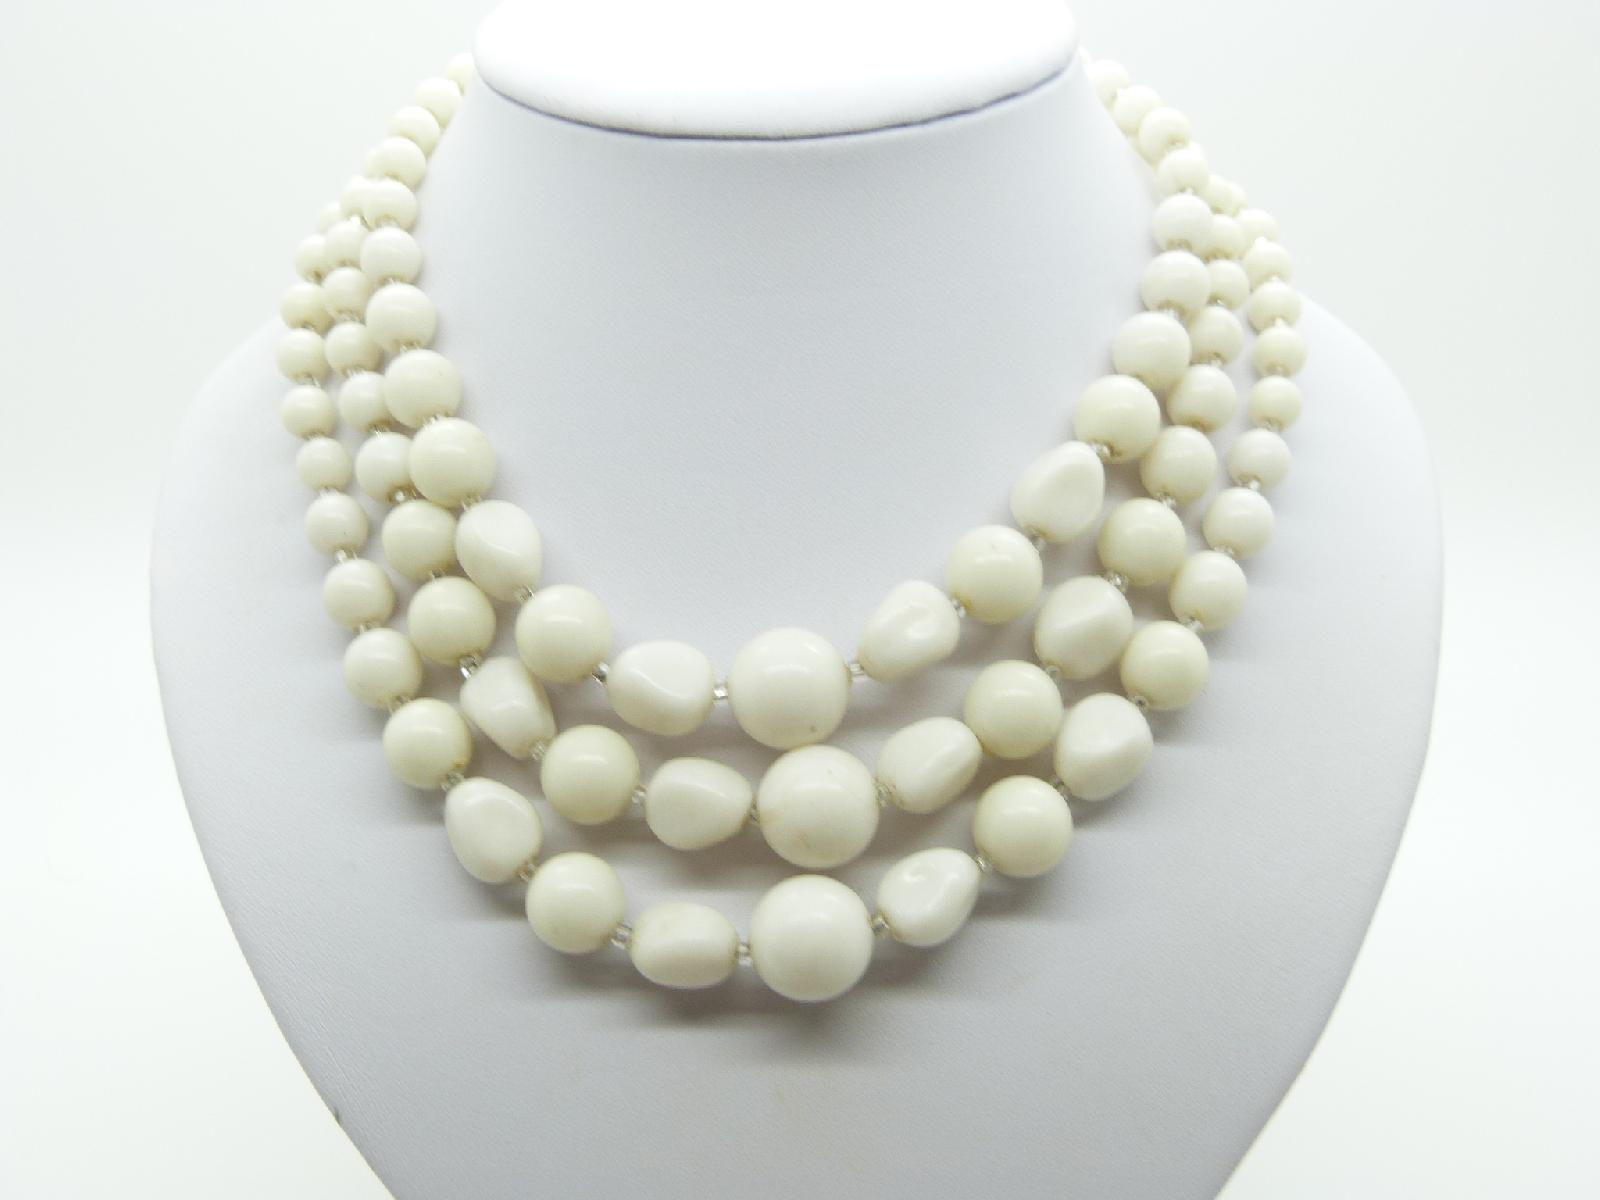 Vintage 50s Three Row Pretty White Plastic Bead Necklace Unusual Shape